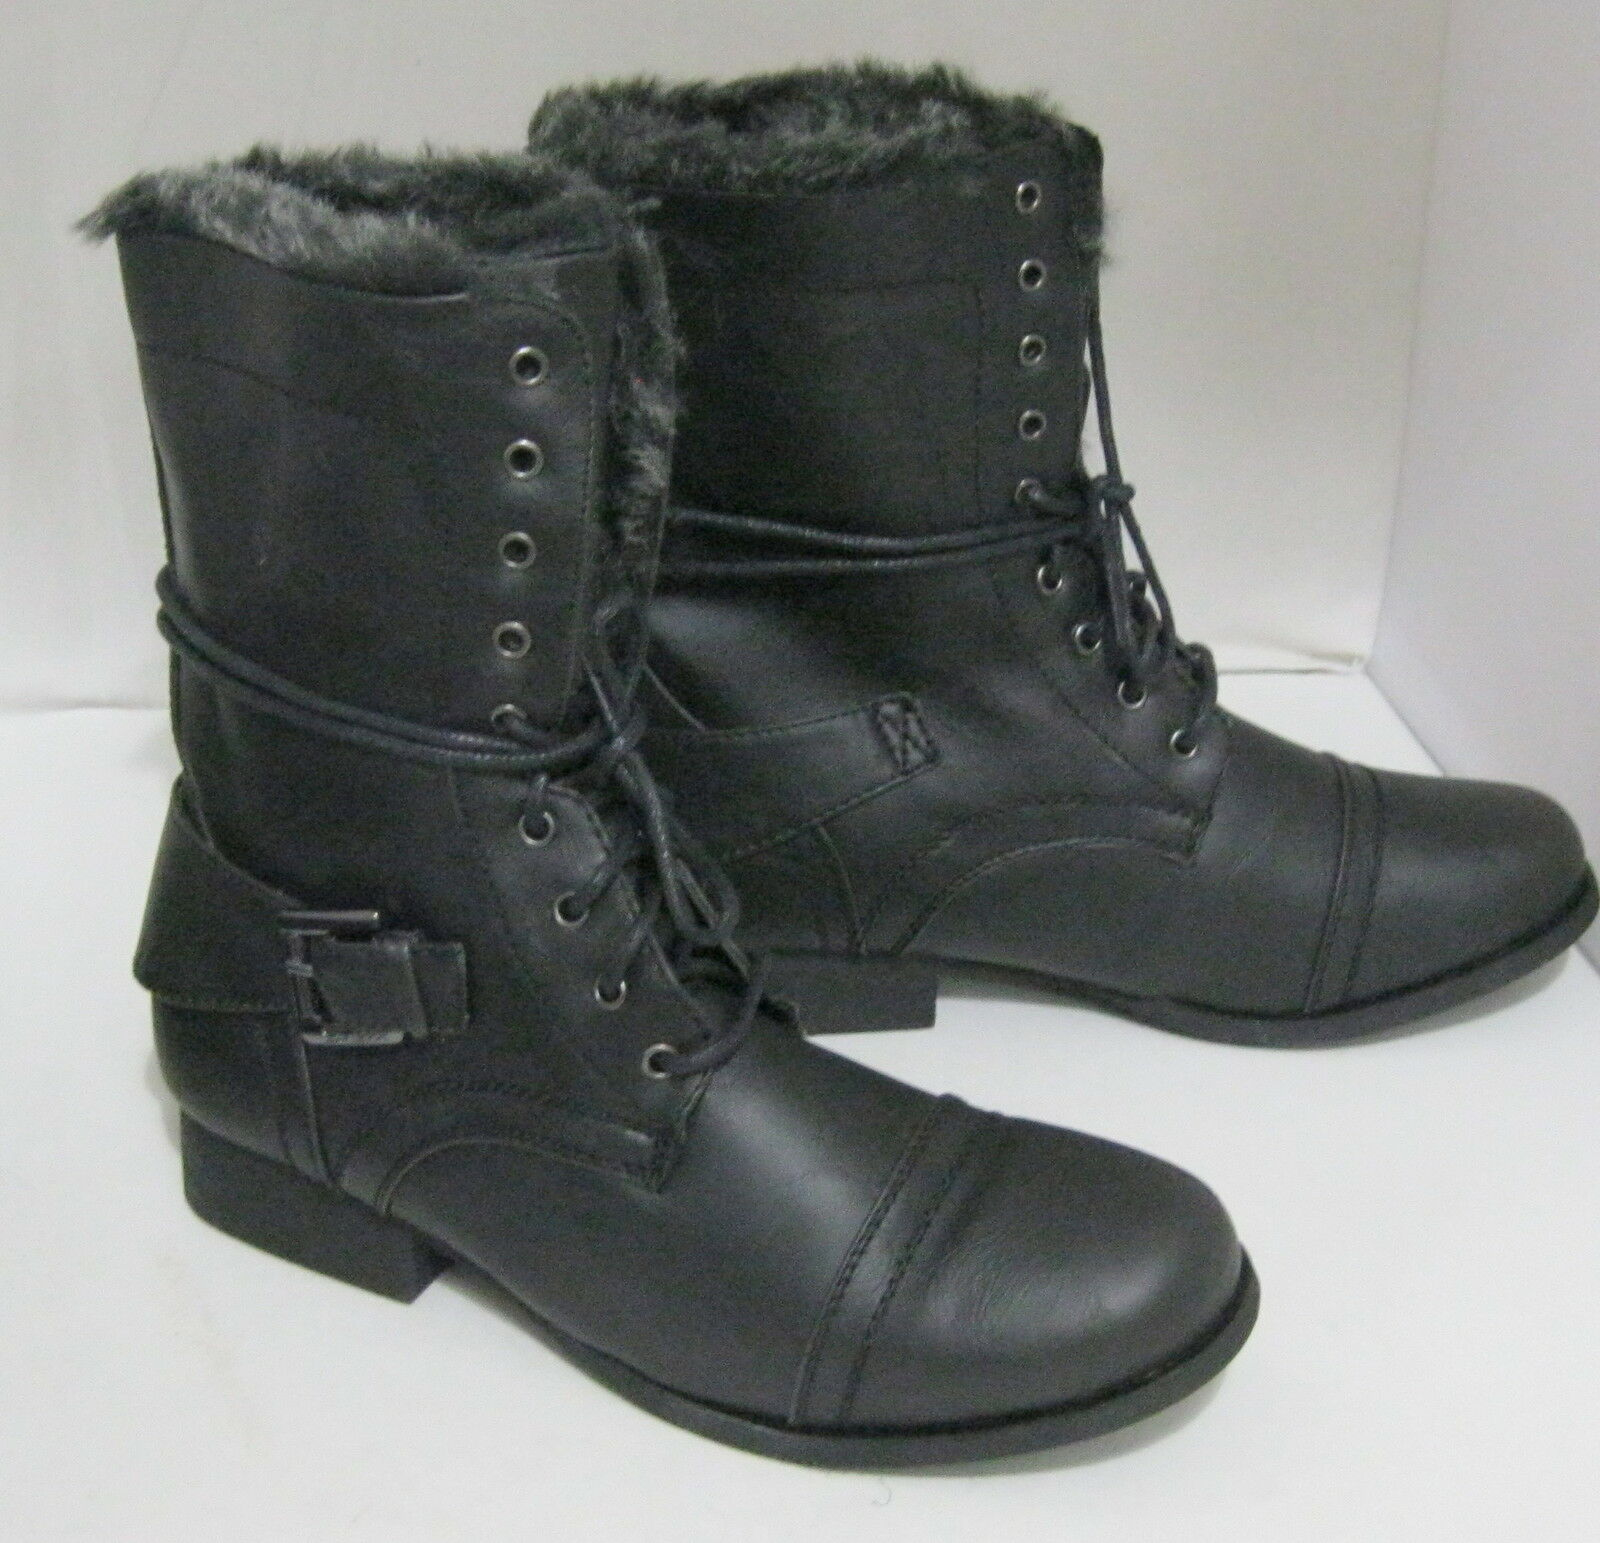 New ladies Black 1 Low Block Heel Lace Up  Sexy Ankle Boot Size 6.5